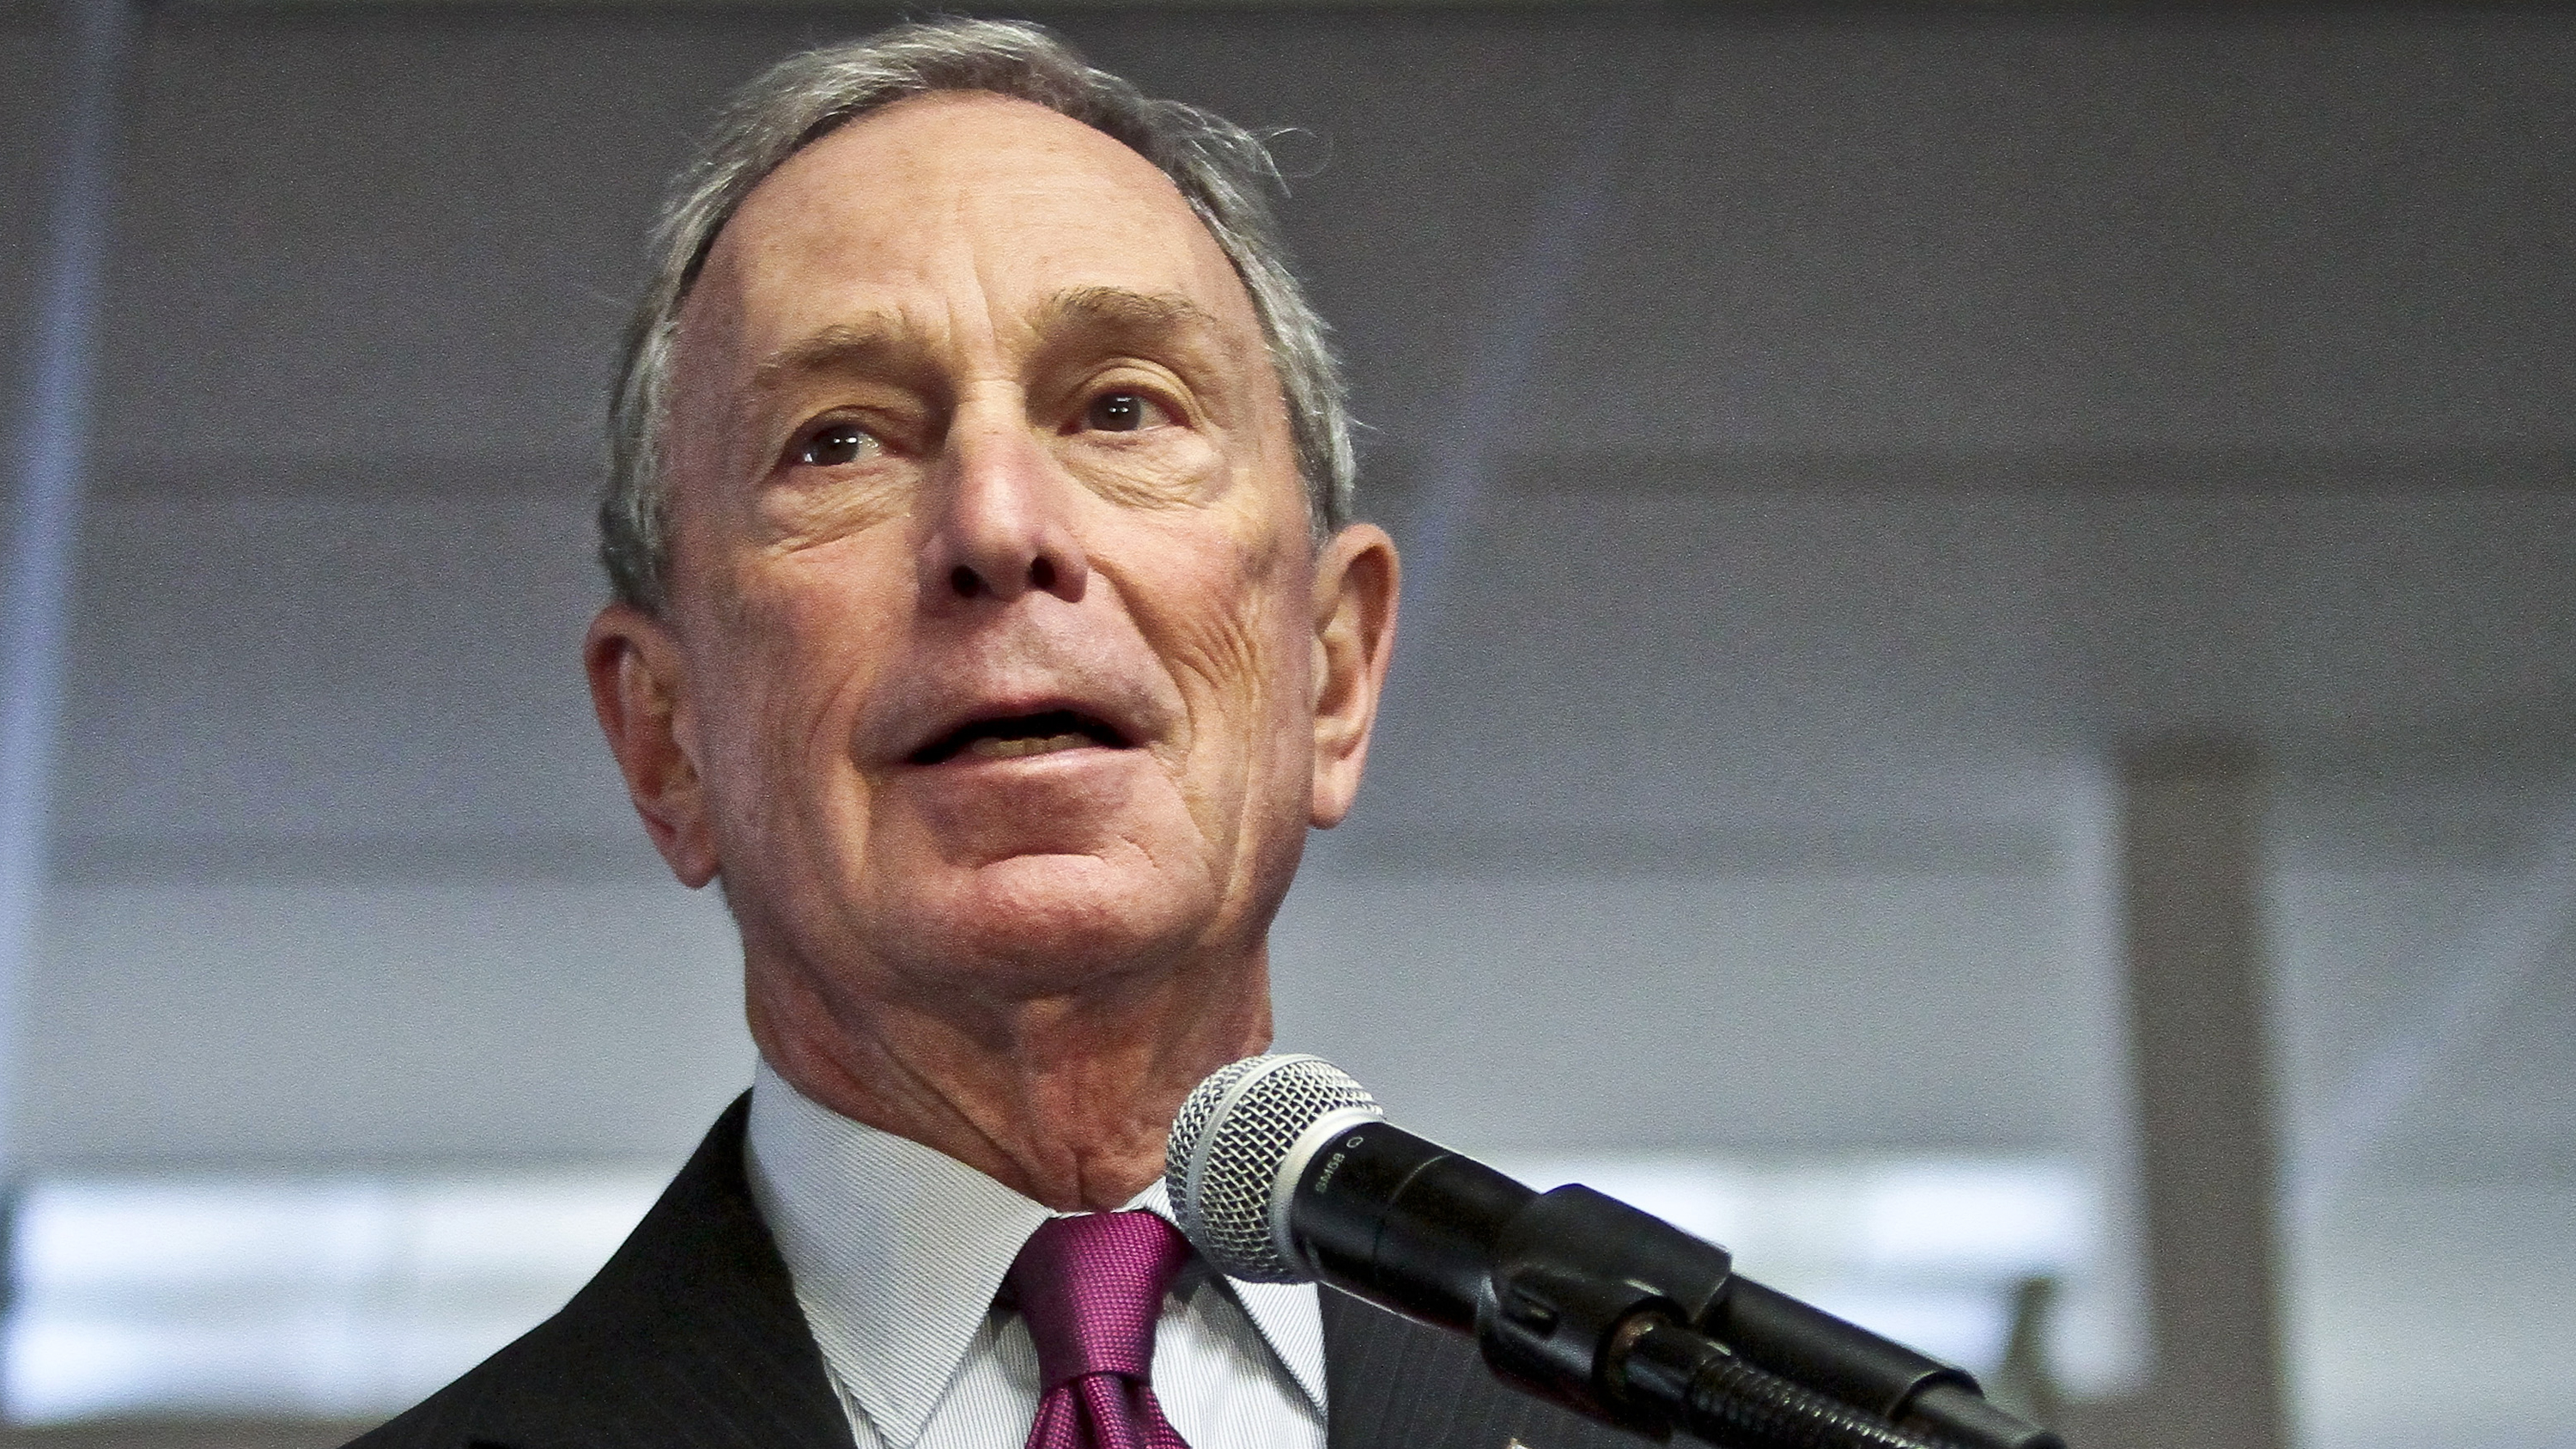 In this Dec. 18, 2013 file photo, then-Mayor Michael Bloomberg speaks in New York. The Republican National Committee began running ads in 40 media markets Tuesday, mostly targeting incumbent senators who supported President Barack Obama's health care program.